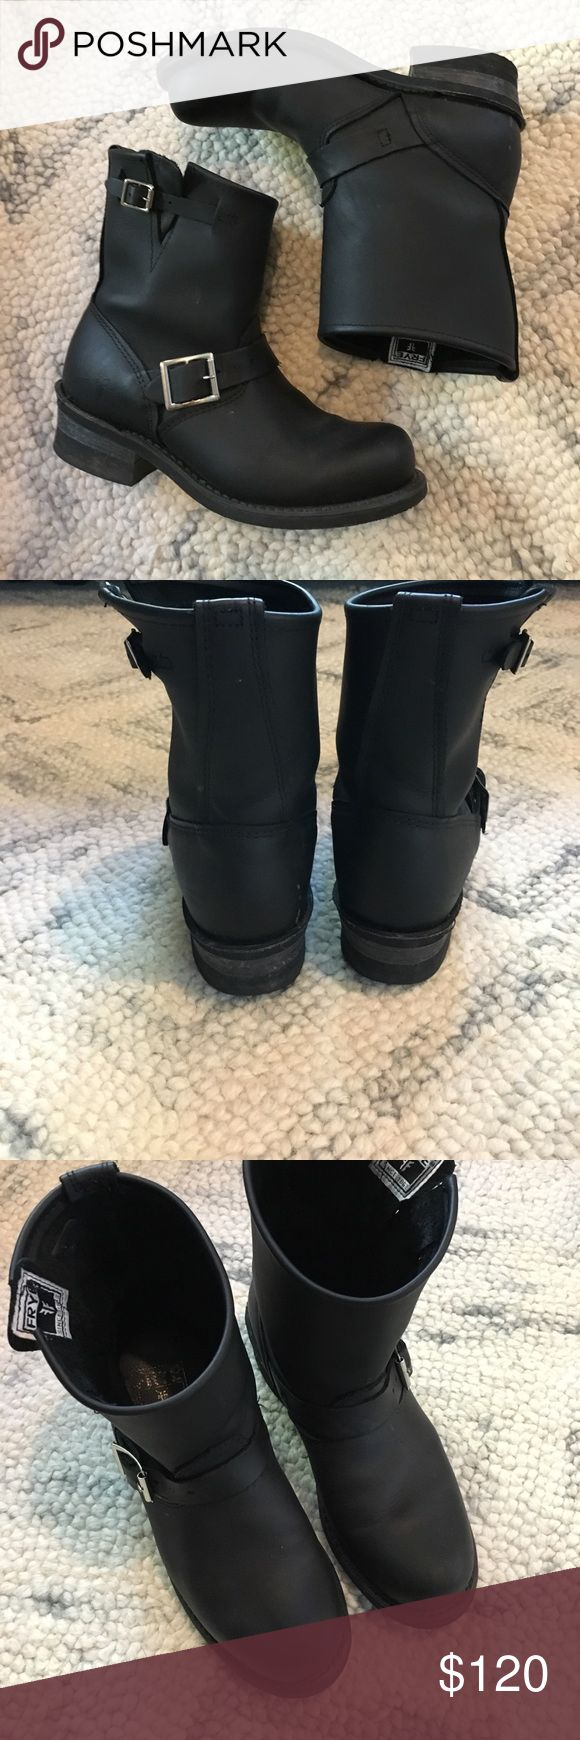 Frye engineer 8R boots, black in a 7.5 women's. Excellent condition. Only worn lightly for about six times. Besides the toe creases, it looks brand new and they're not even broken in yet. This is a total steal. I paid full price on these boots but don't like them because I'm a short gal and they make me look even shorter. Frye Shoes Combat & Moto Boots